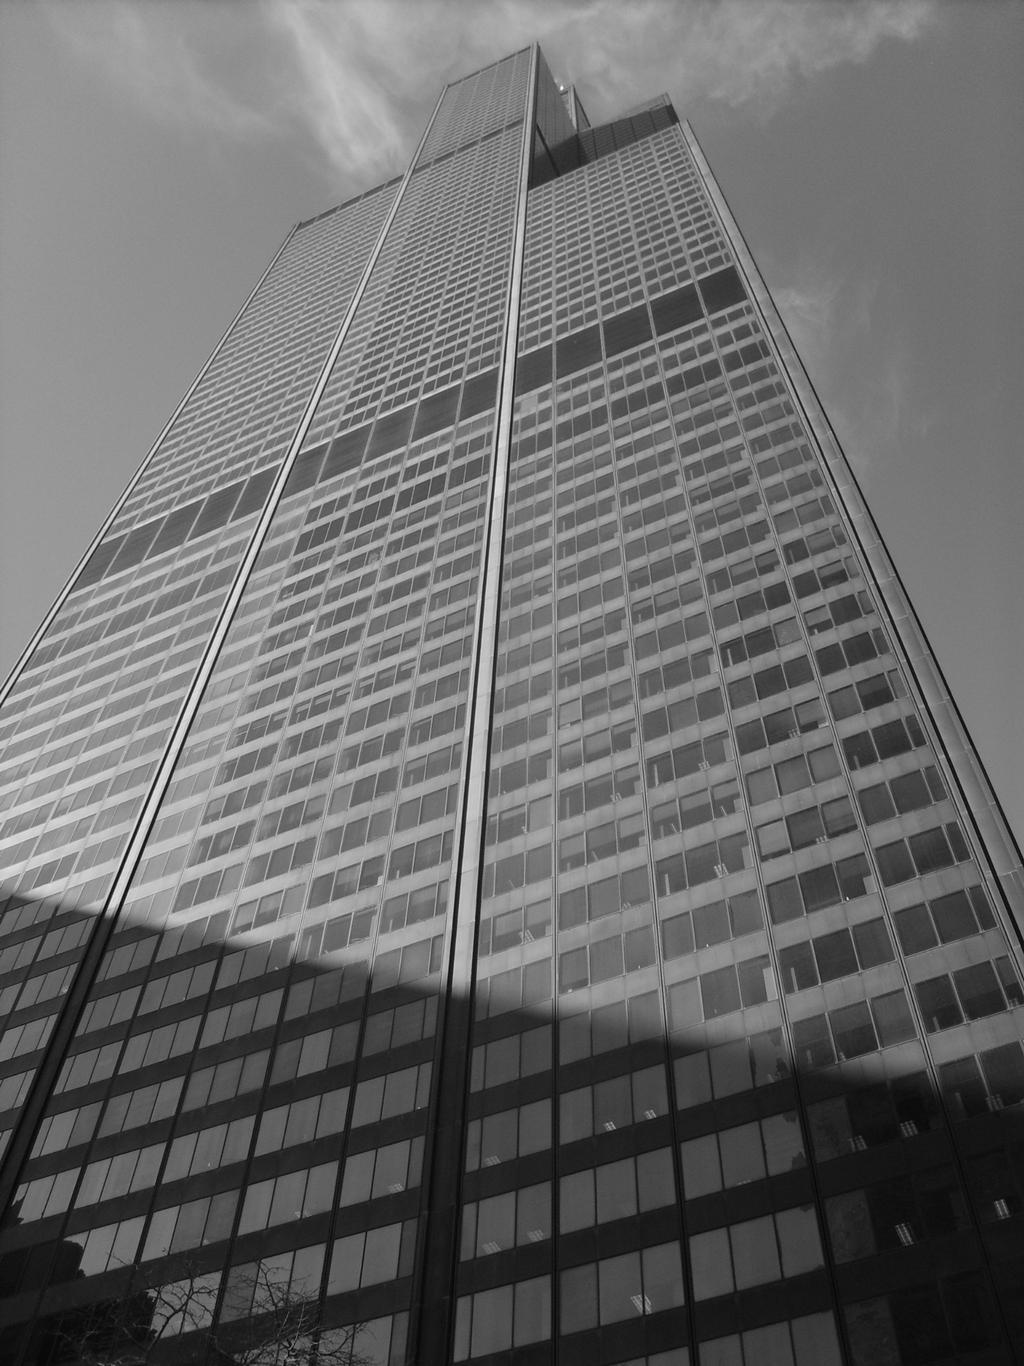 Willis Tower 'Sears Tower'